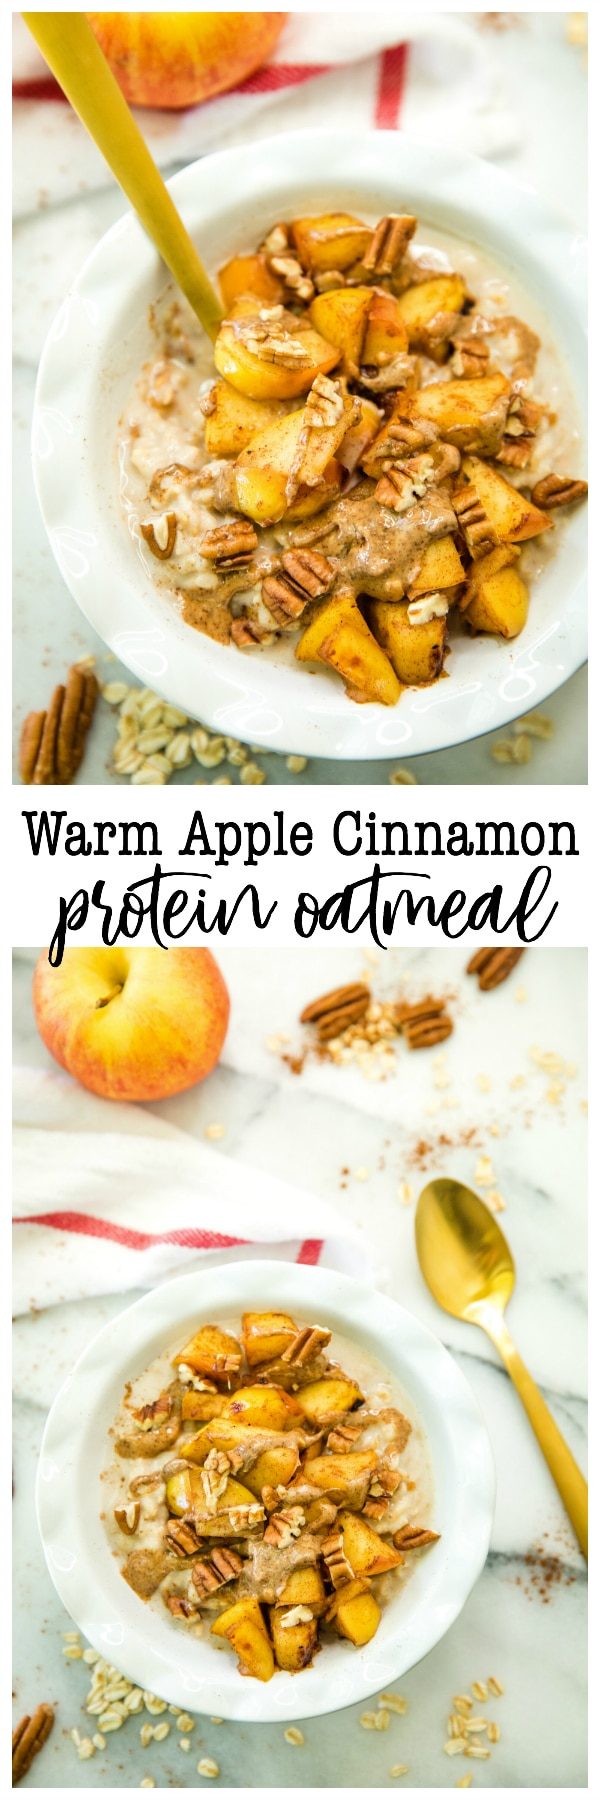 Warm Apple Cinnamon Protein Oatmeal has the hearty flavors of fall we love so much! You guys are in for a treat with this bowl of creamy protein-packed oats, topped with caramelized bites of tender apples and crunchy pecans to make for the most perfect nutritious cozy breakfast.